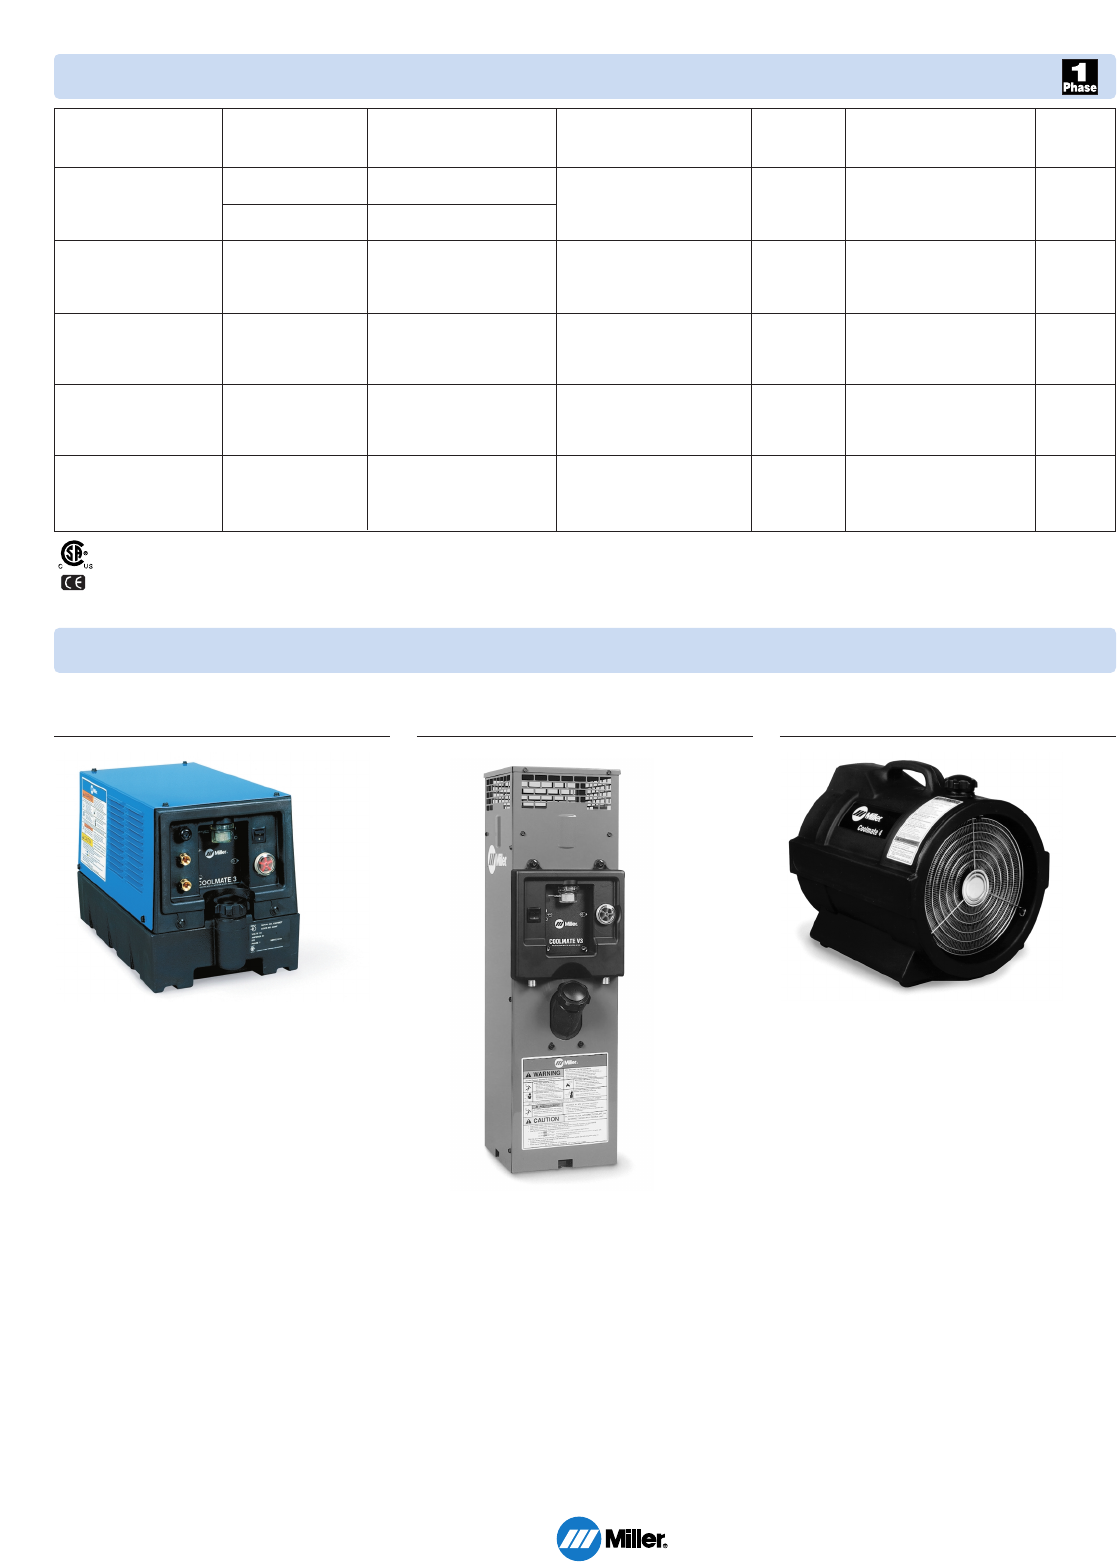 Miller Electric Ay7 Users Manual A 2 Coolant Systems